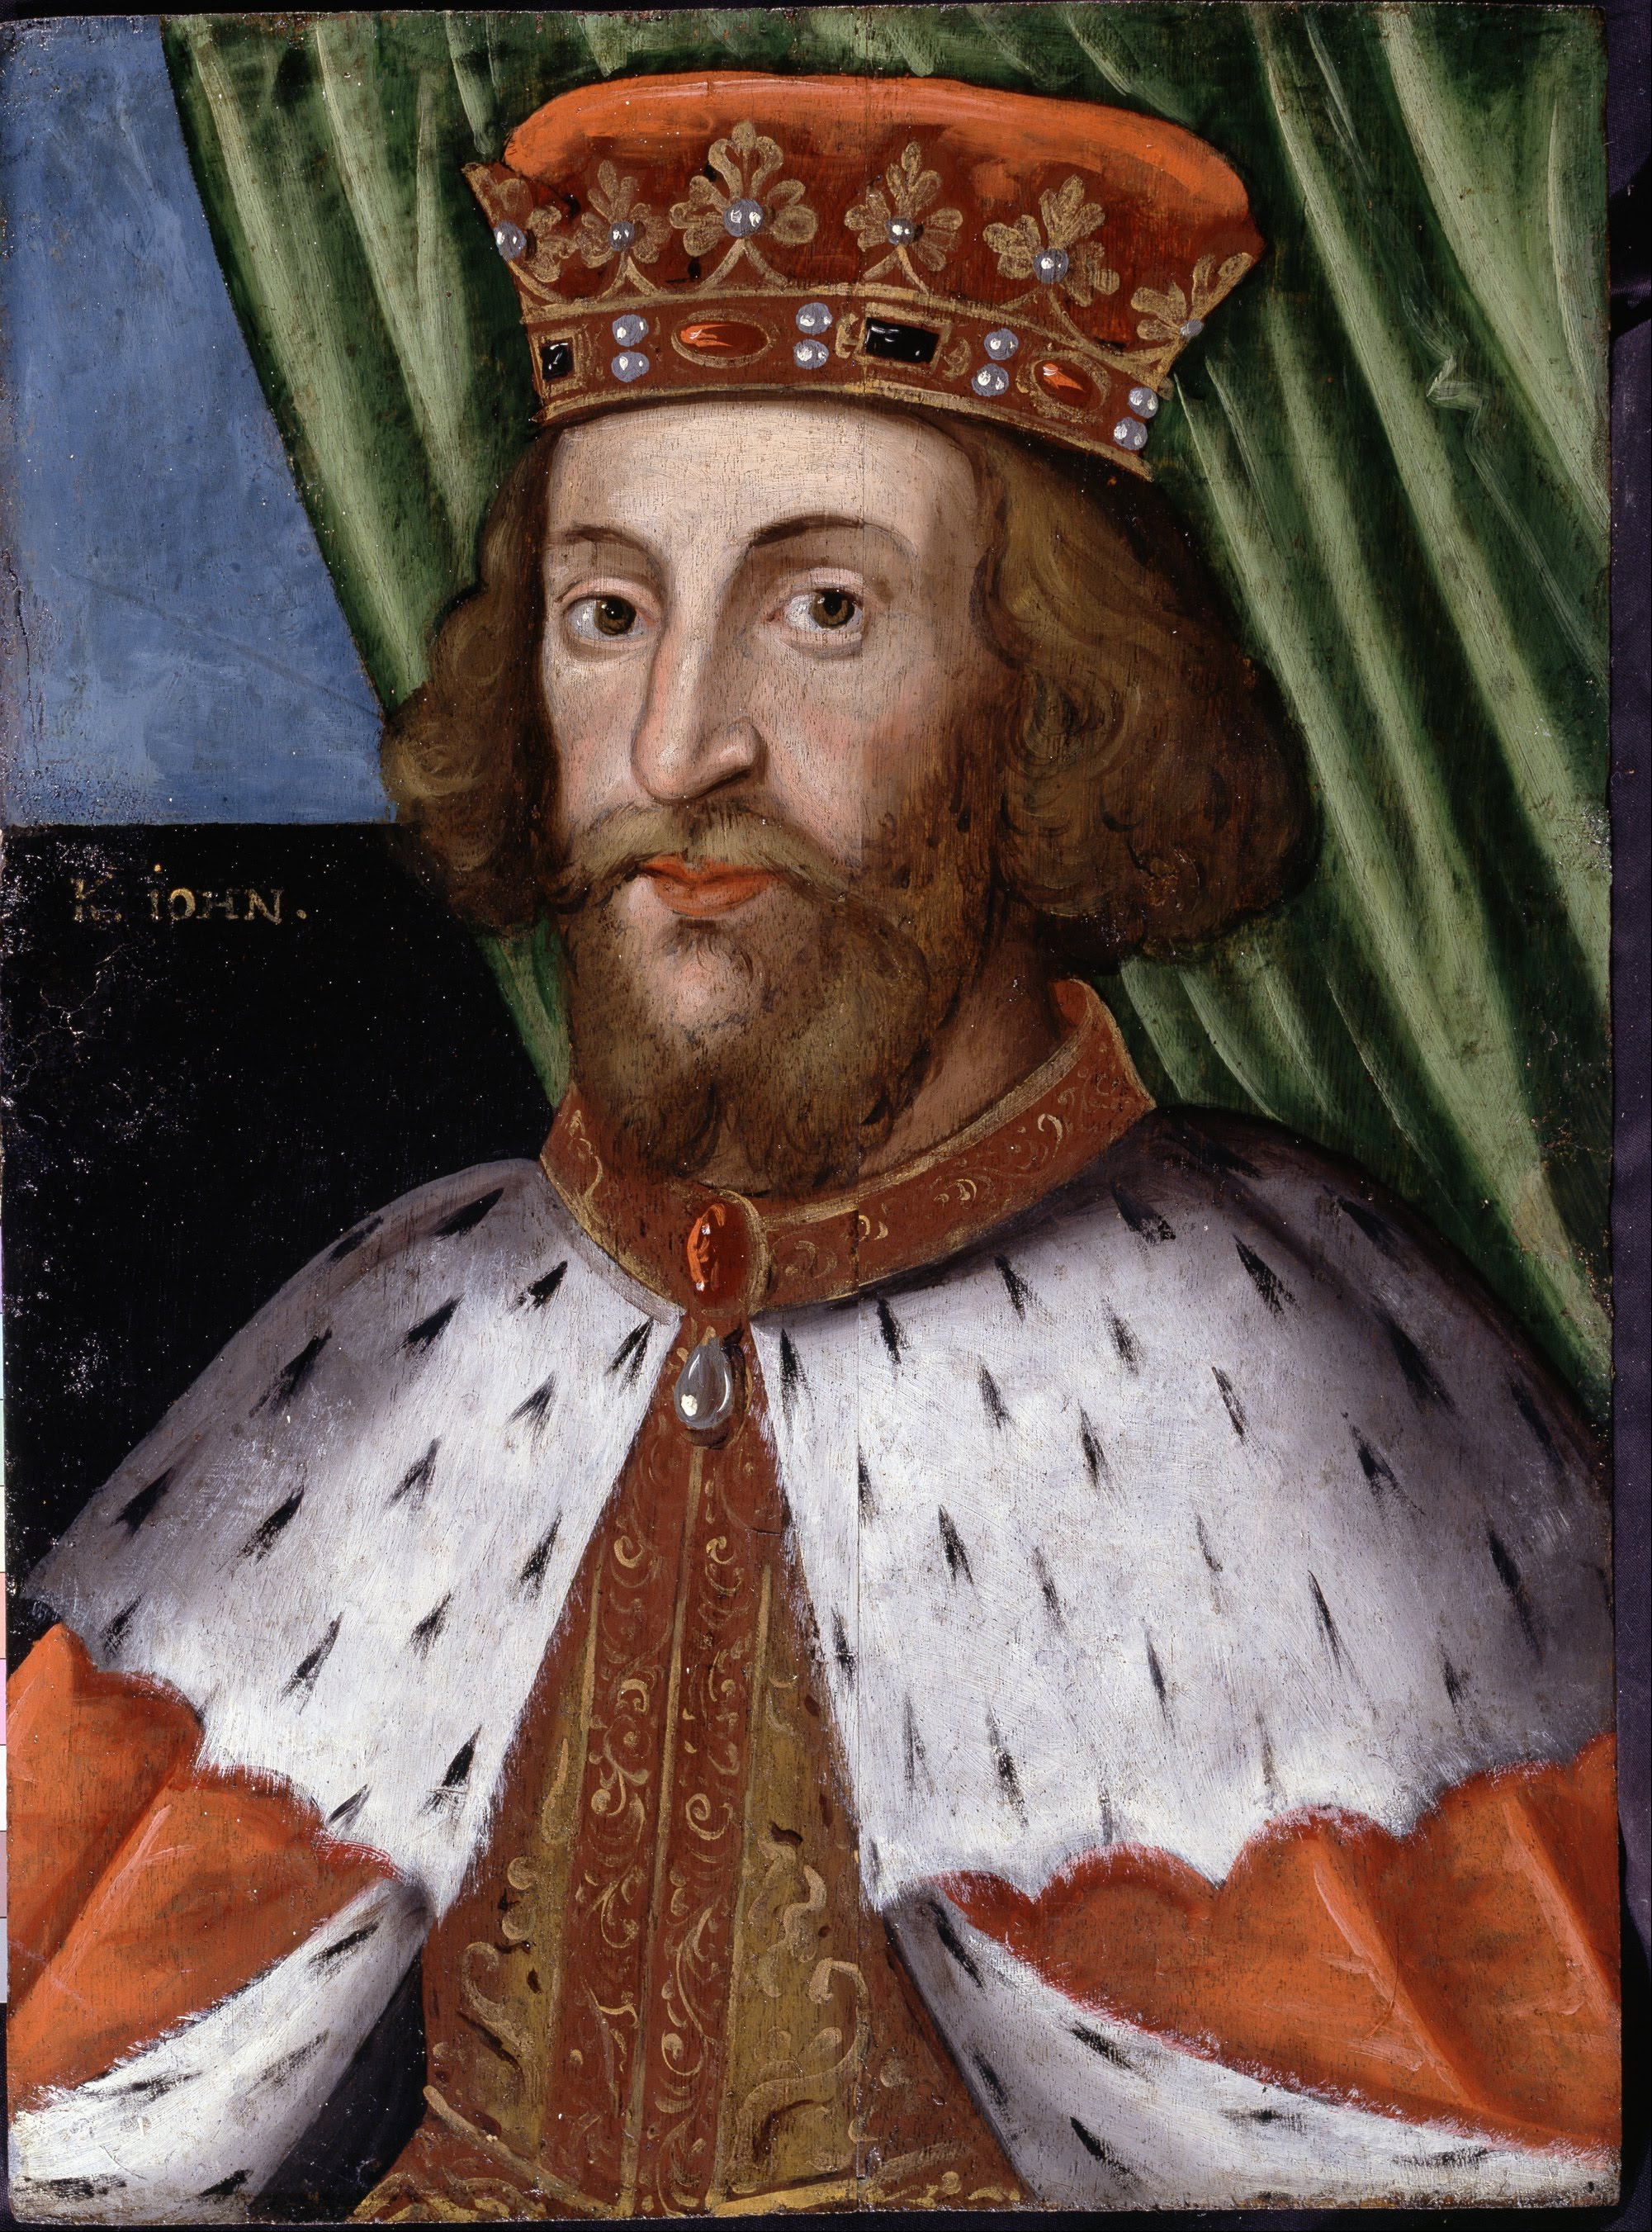 King John's expedition to Ireland, 1210: the evidence reconsidered